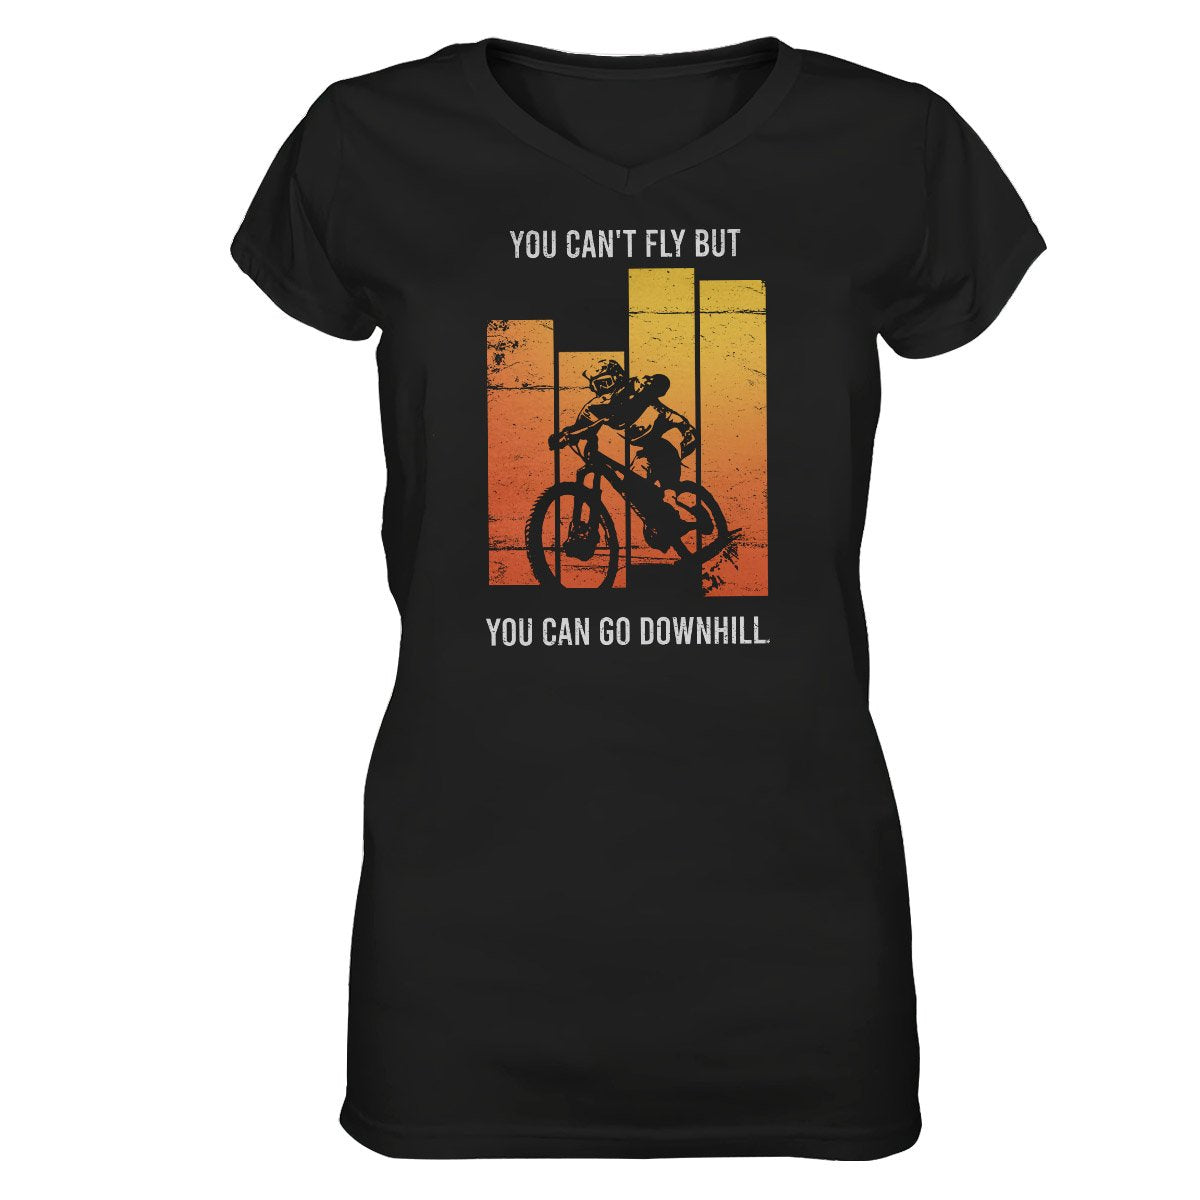 You Can't Fly But You Can Go Downhill EZ22 0112 Women V-neck T-shirt